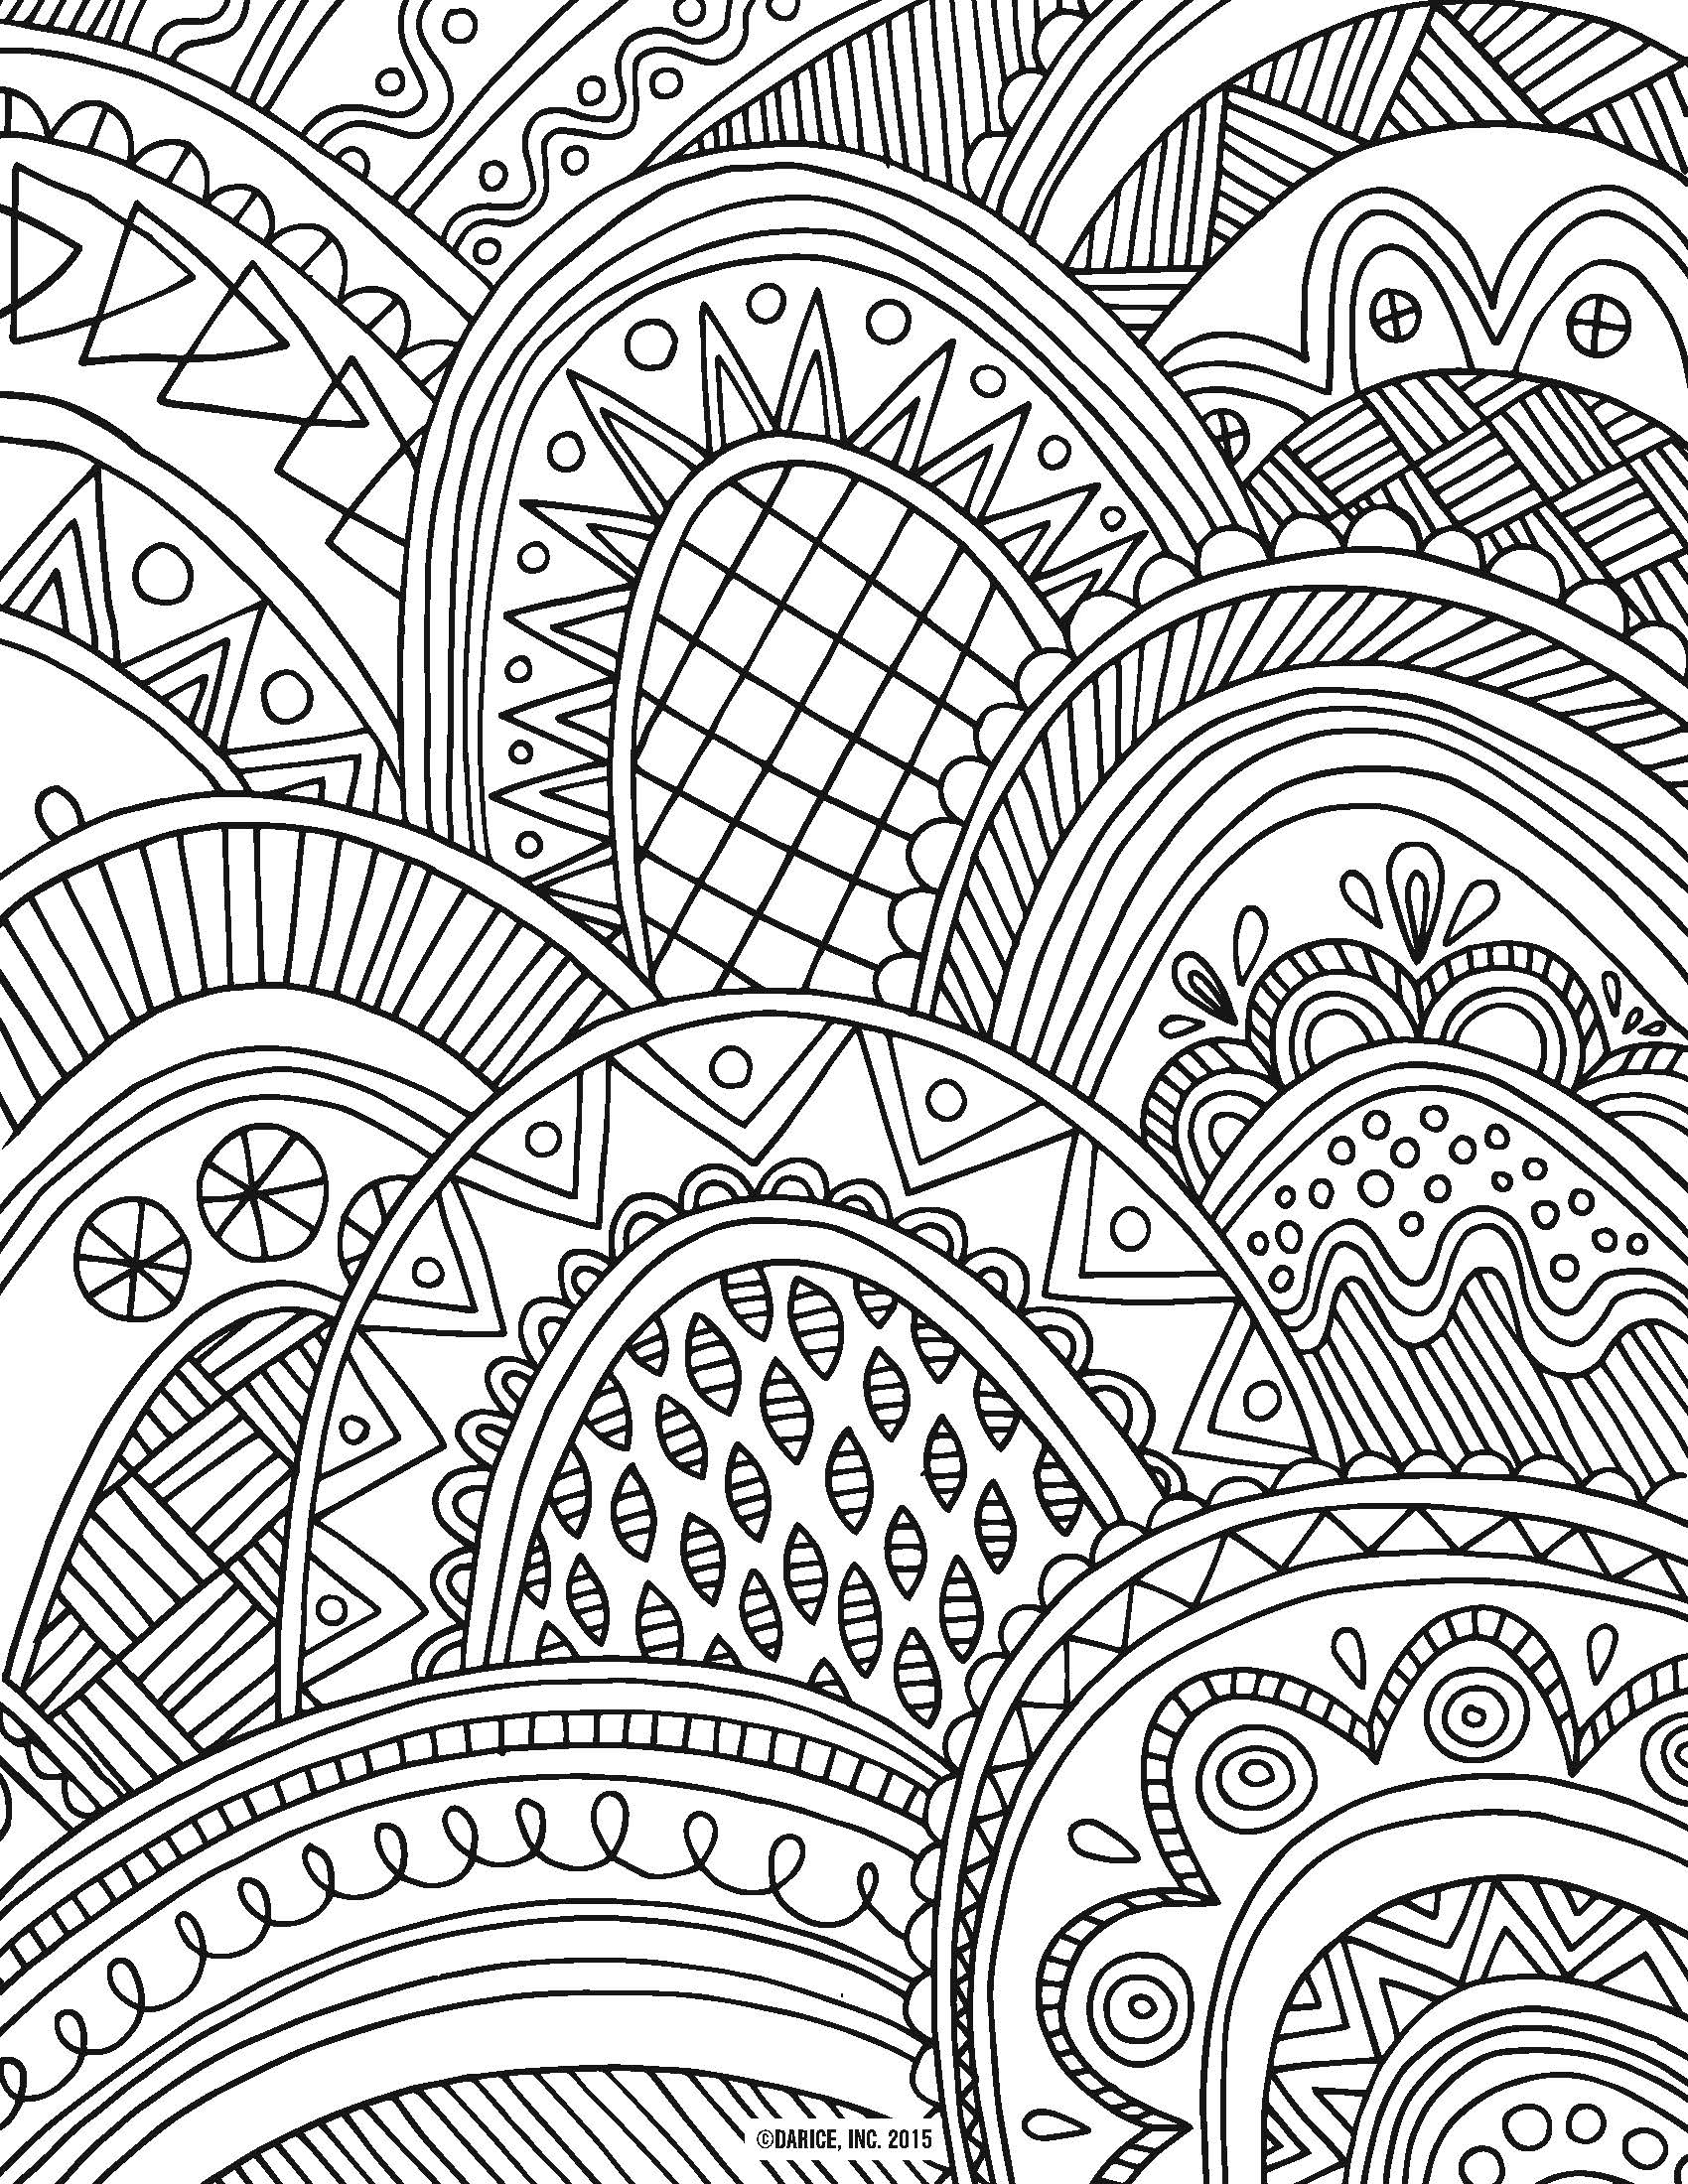 coloring pages for adults printable elephant coloring pages for adults best coloring pages printable adults coloring pages for